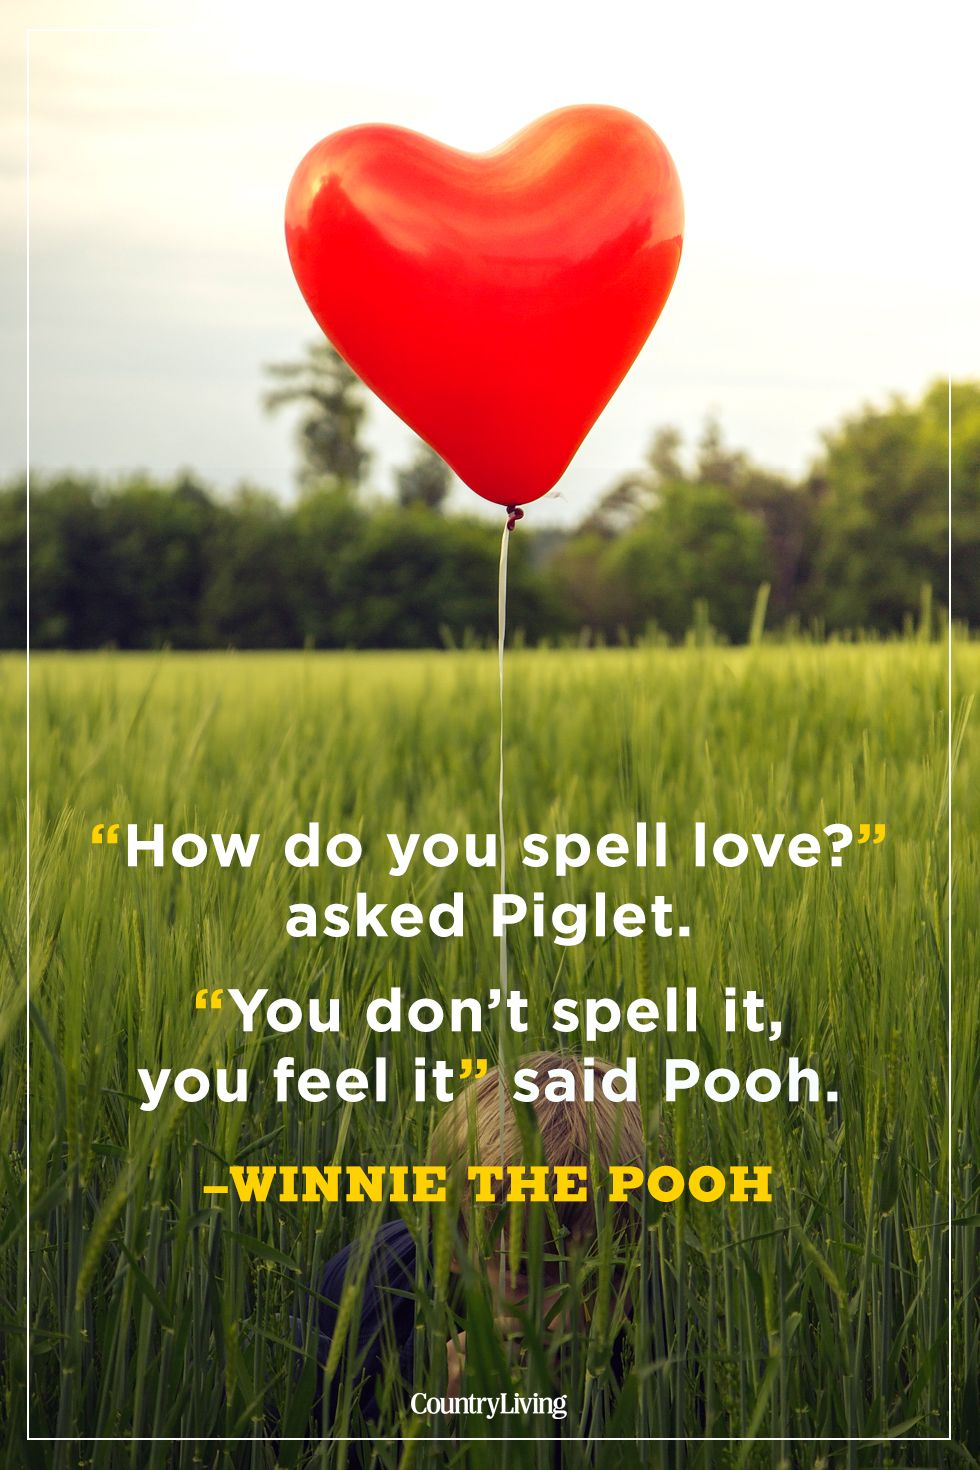 Best Winnie the Pooh Quotes - Winnie the Pooh Friendship and